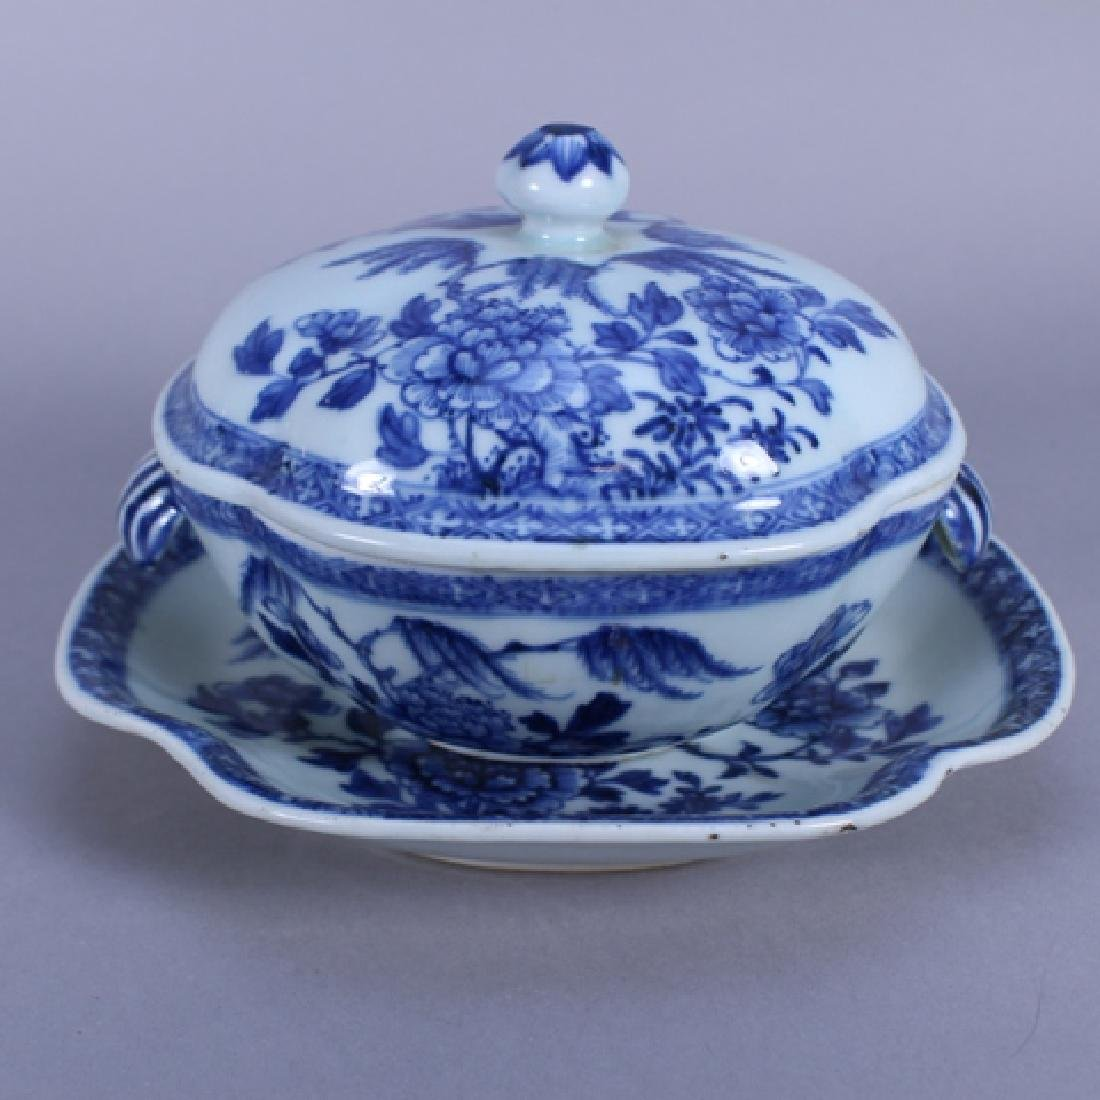 18th C. Chinese Porcelain Covered Bowl & Tray